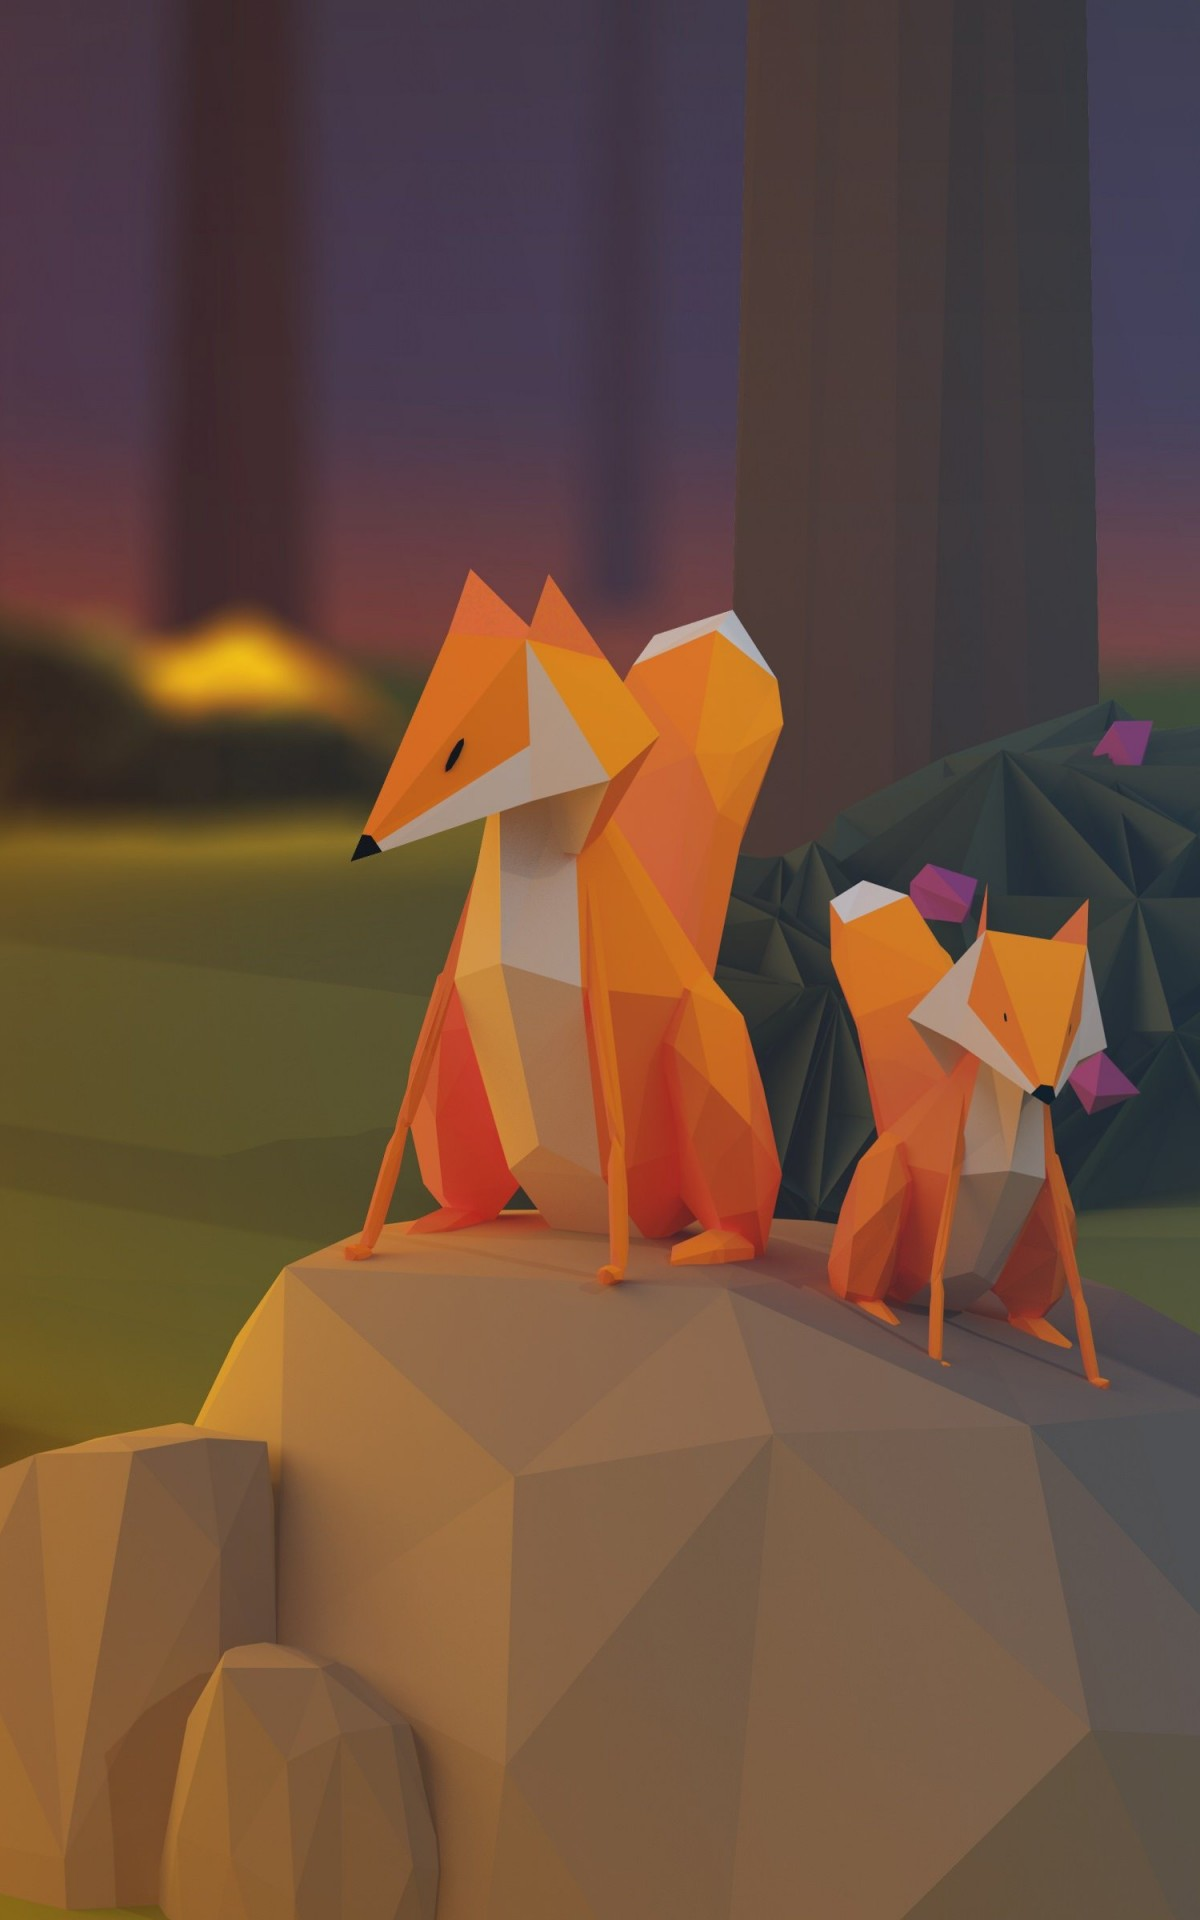 Low Poly Foxes Wallpaper for Amazon Kindle Fire HDX